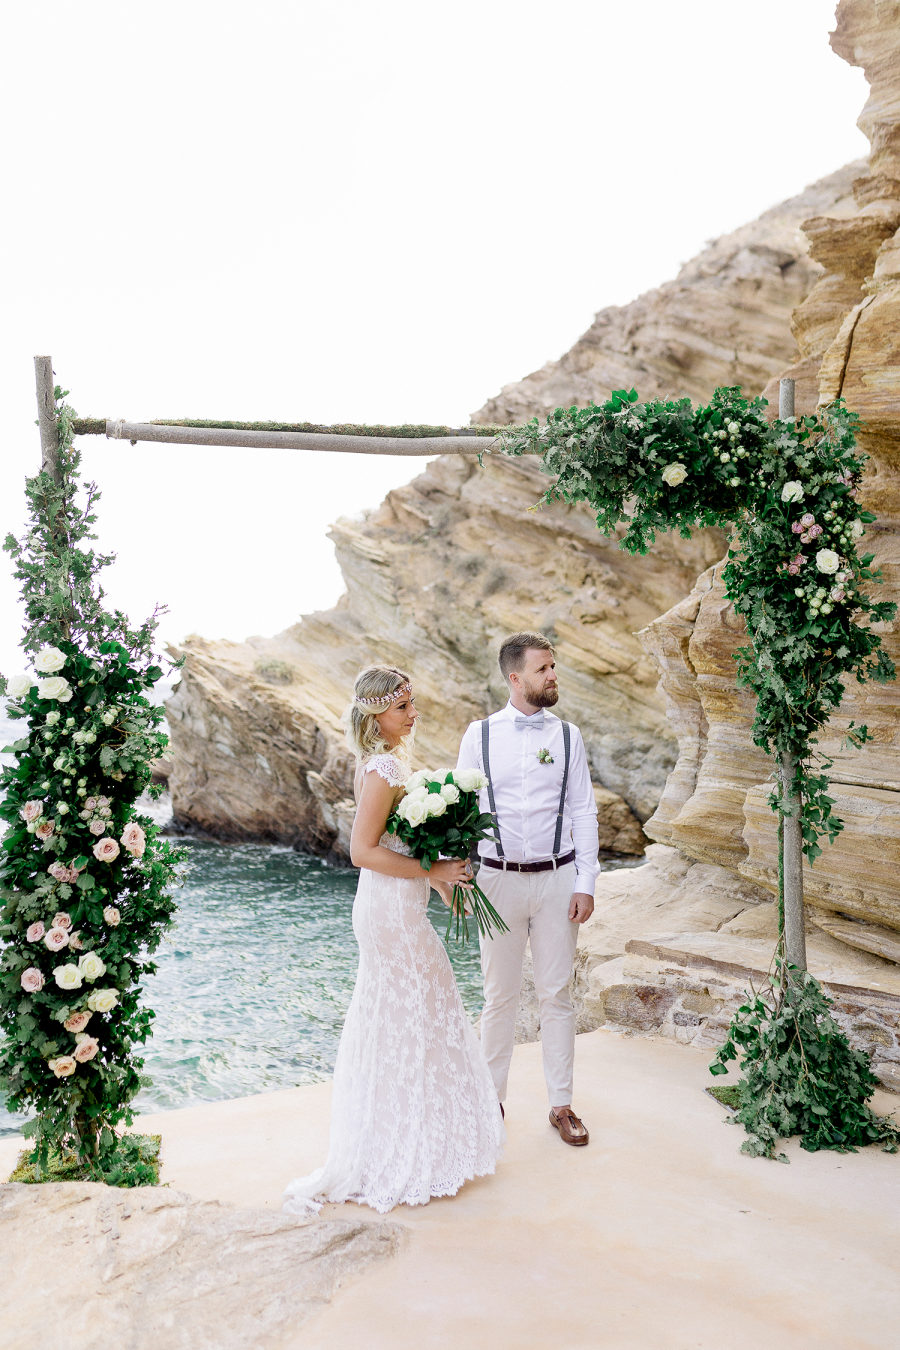 The wedding arch was a lush one, decorated with lush foliage and blush blooms